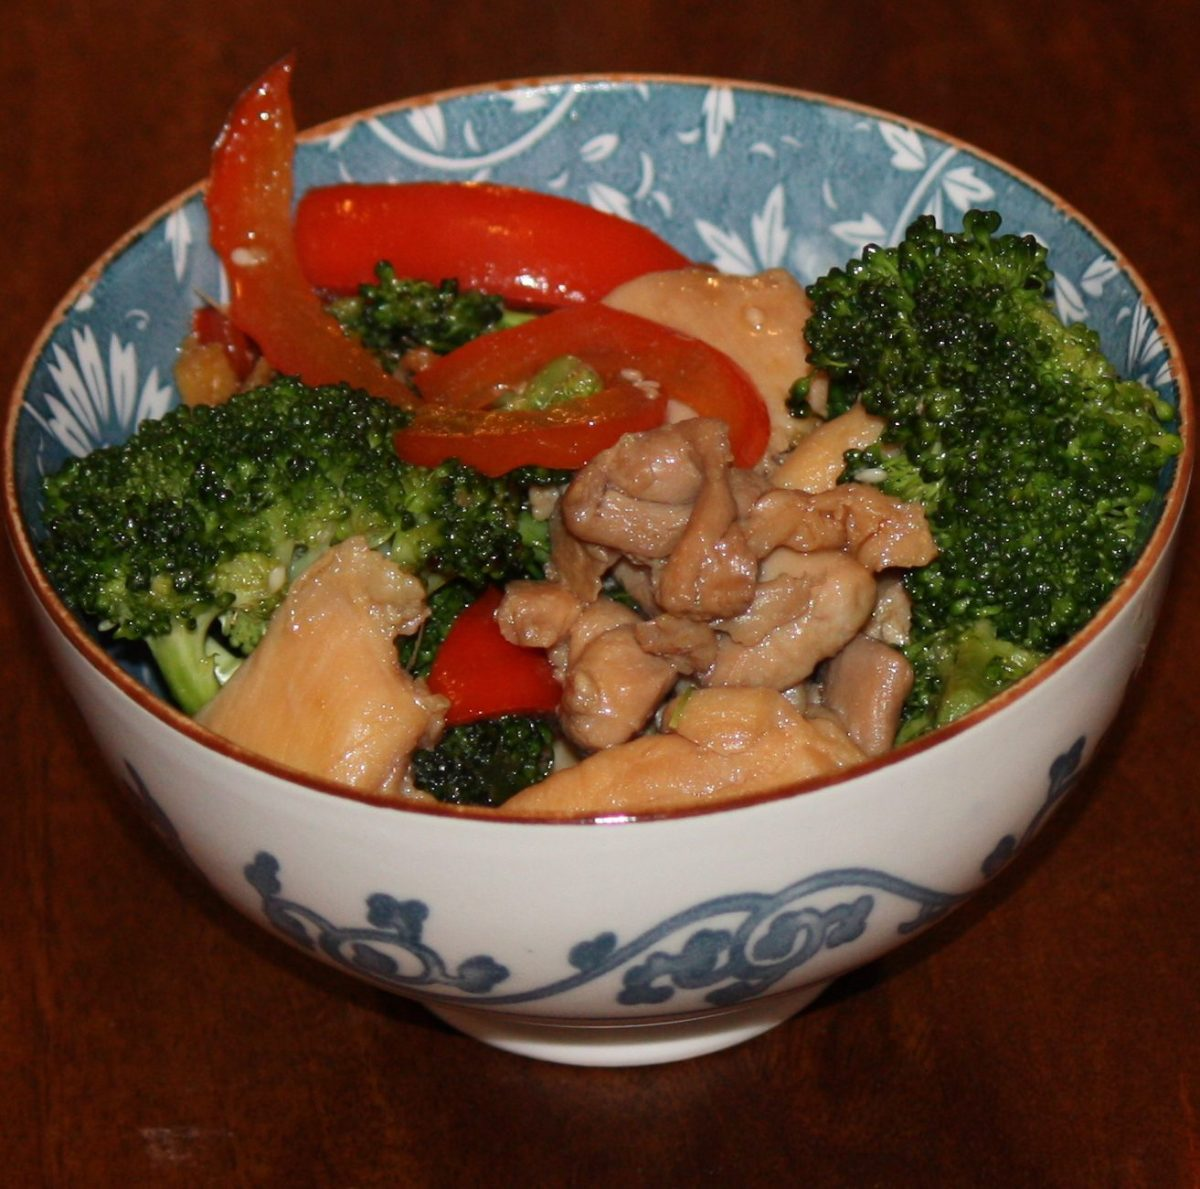 Gluten-Free and Low-FODMAP Chicken with Broccoli